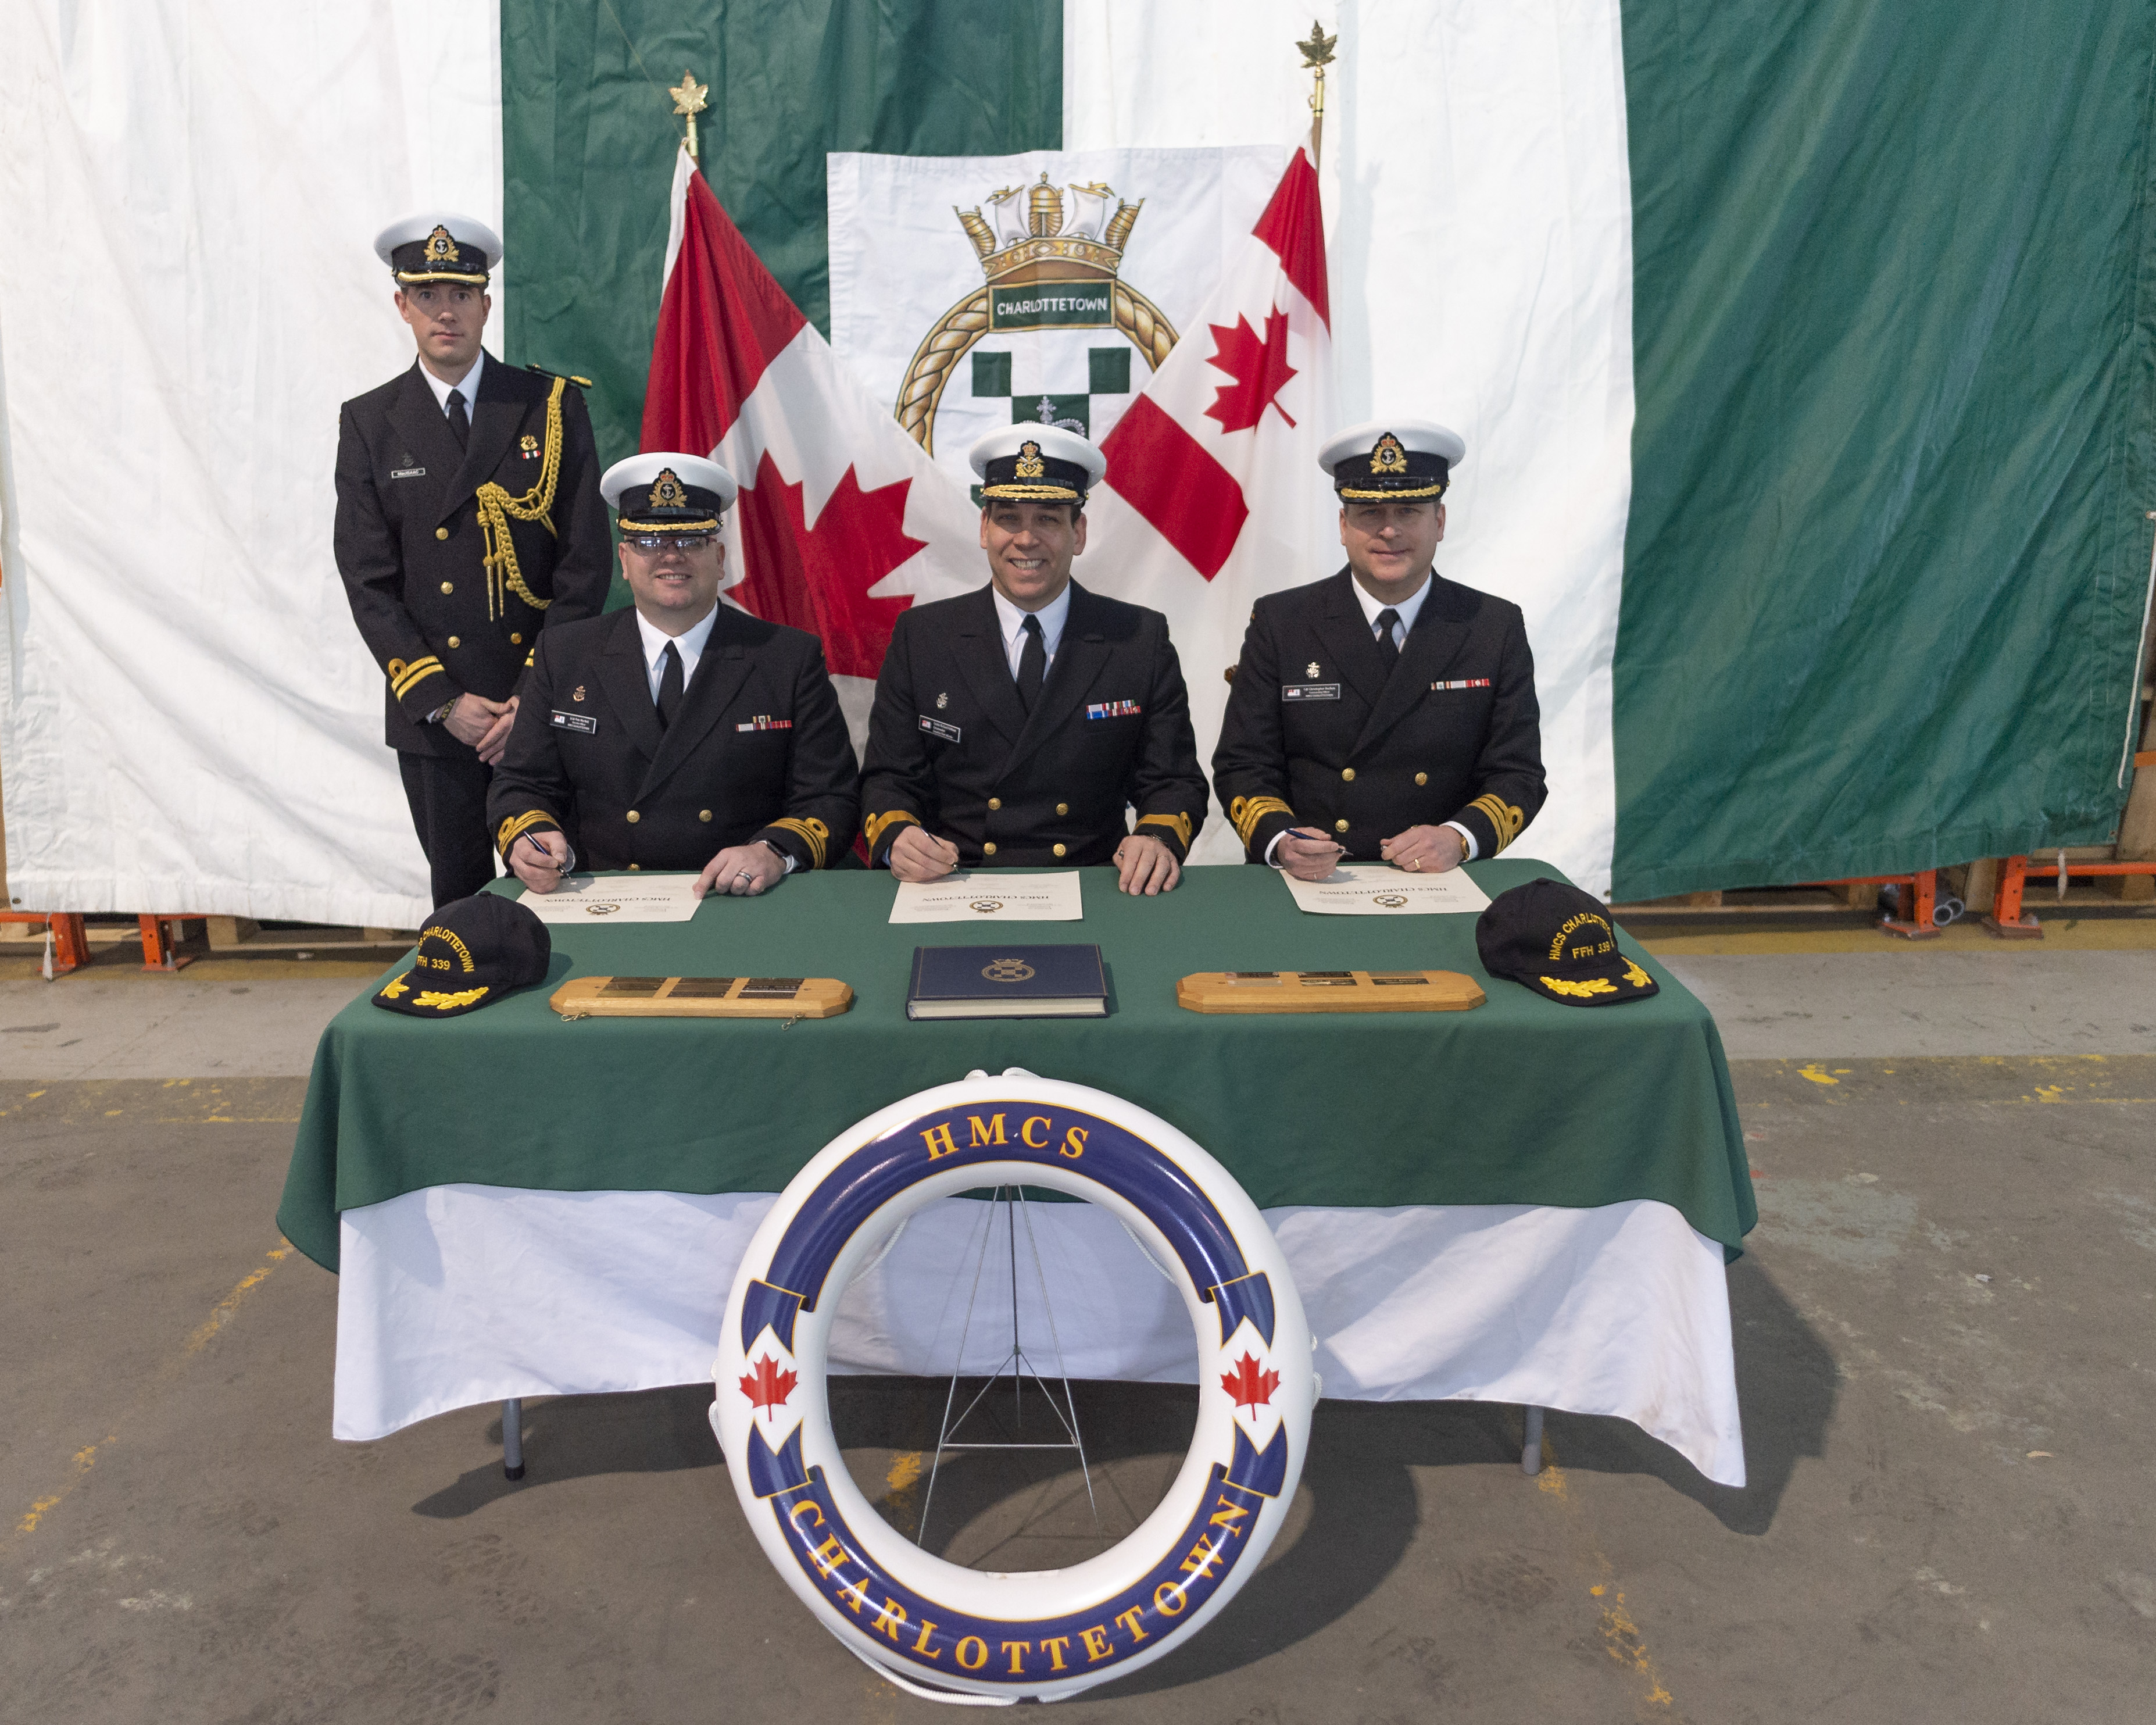 New CO for HMCS Charlottetown